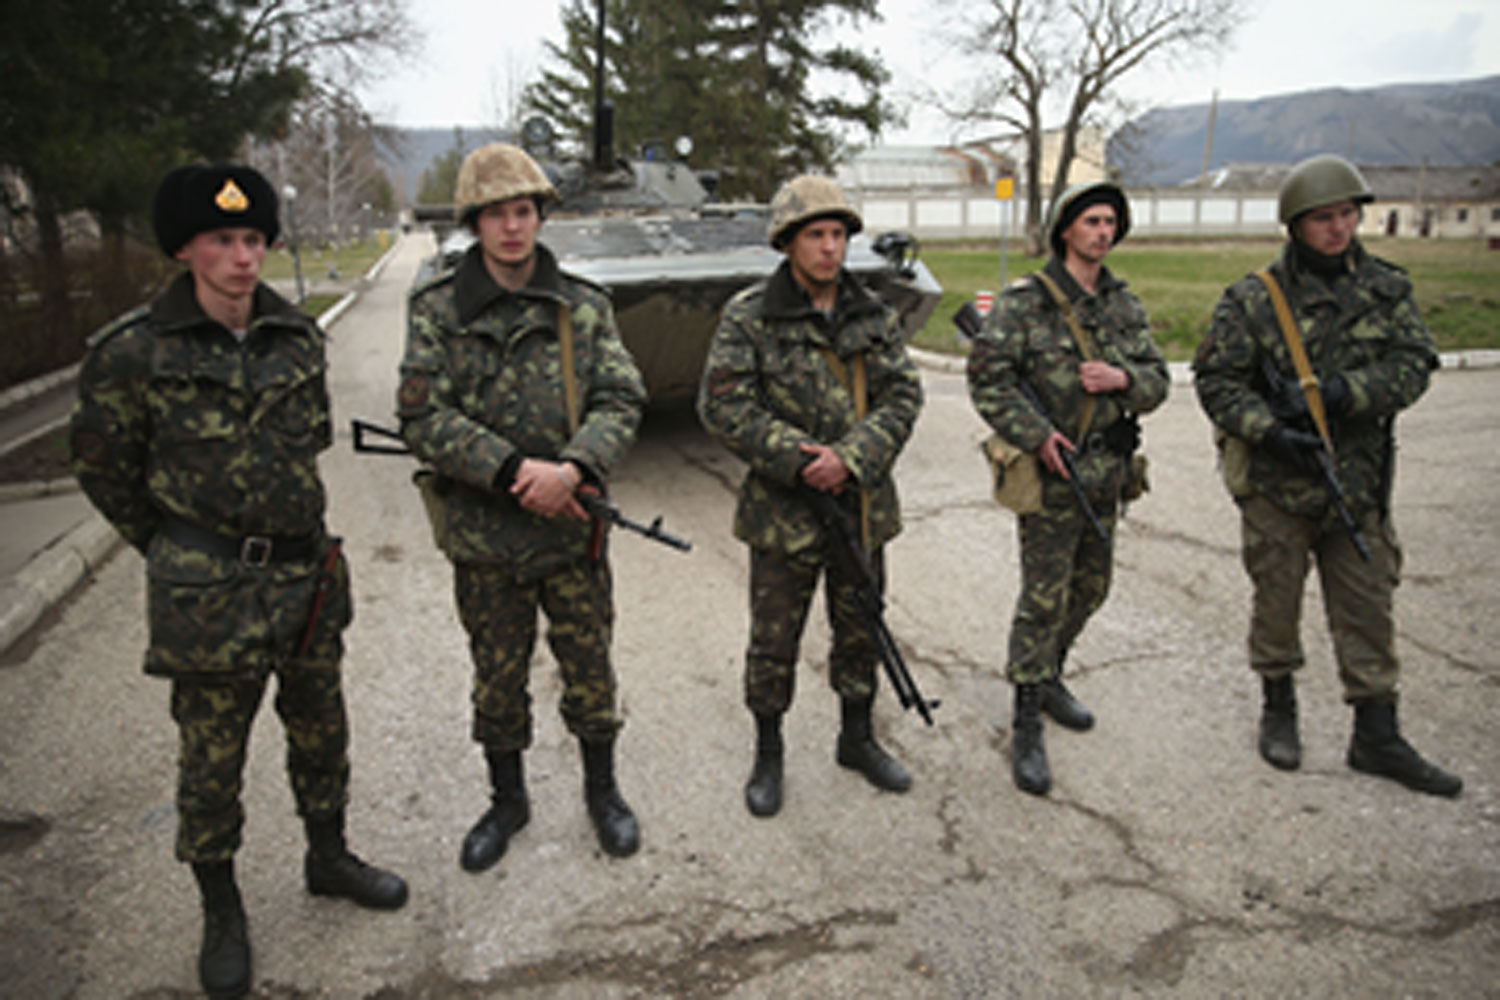 Ukrainian soldiers and a Ukrainian army tank stand just inside the gate at a Ukrainian military base that was surrounded by several hundred Russian-speaking soldiers in Crimea on March 2, 2014 in Perevanie, Ukraine.